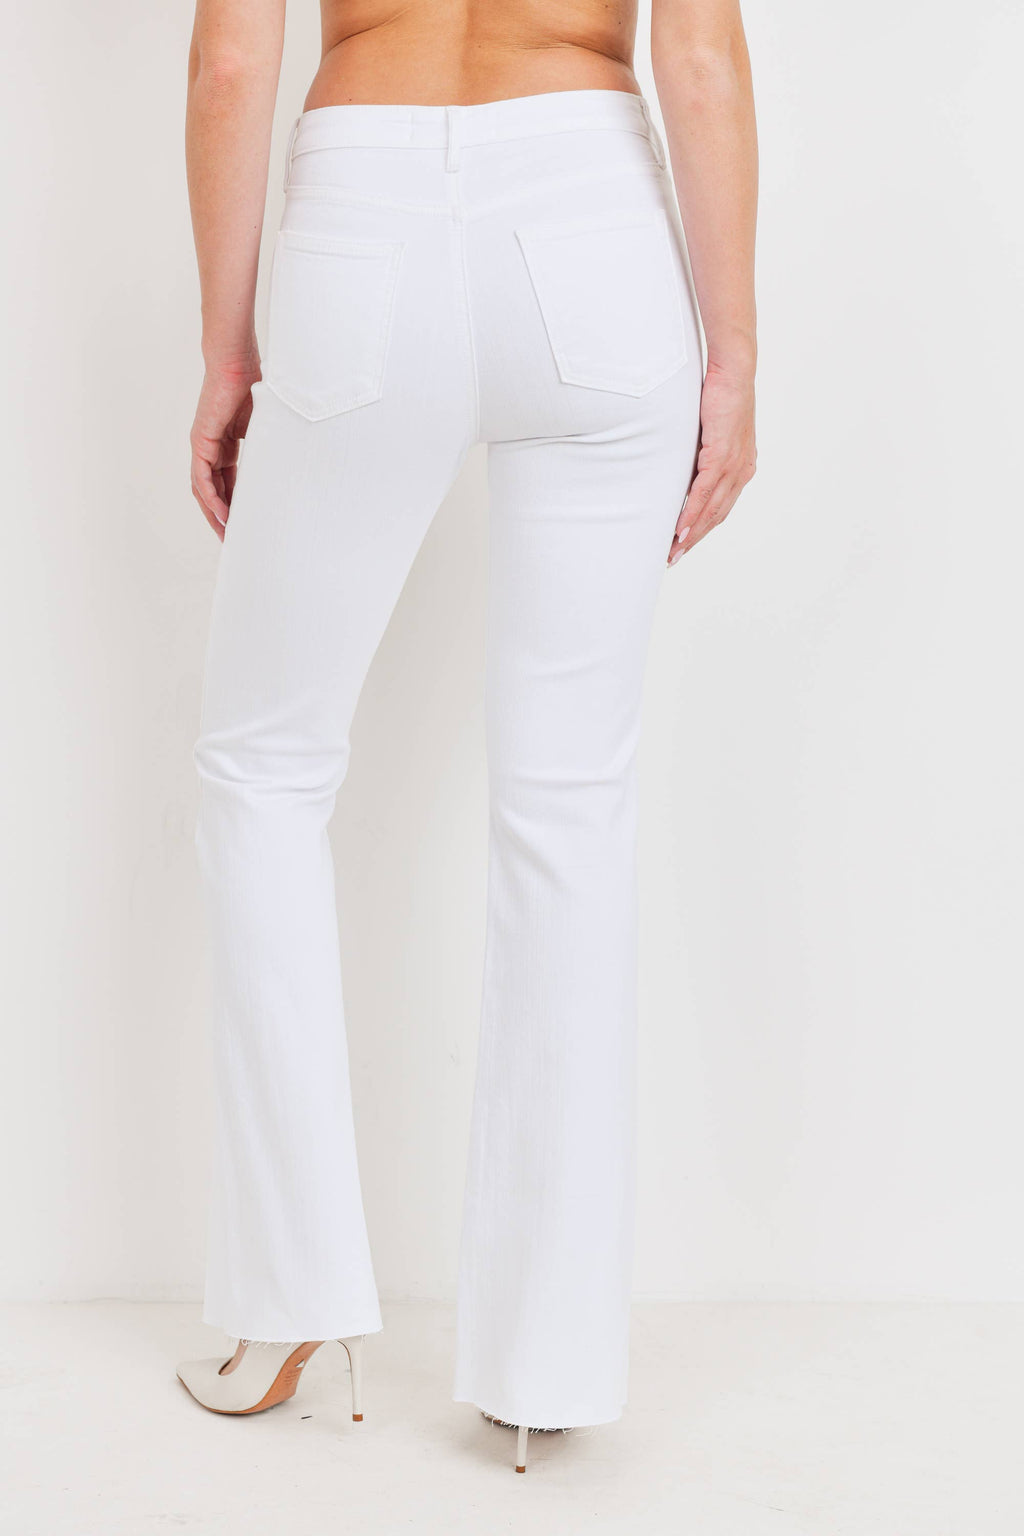 Just Black Denim | Optic White High Rise Flare